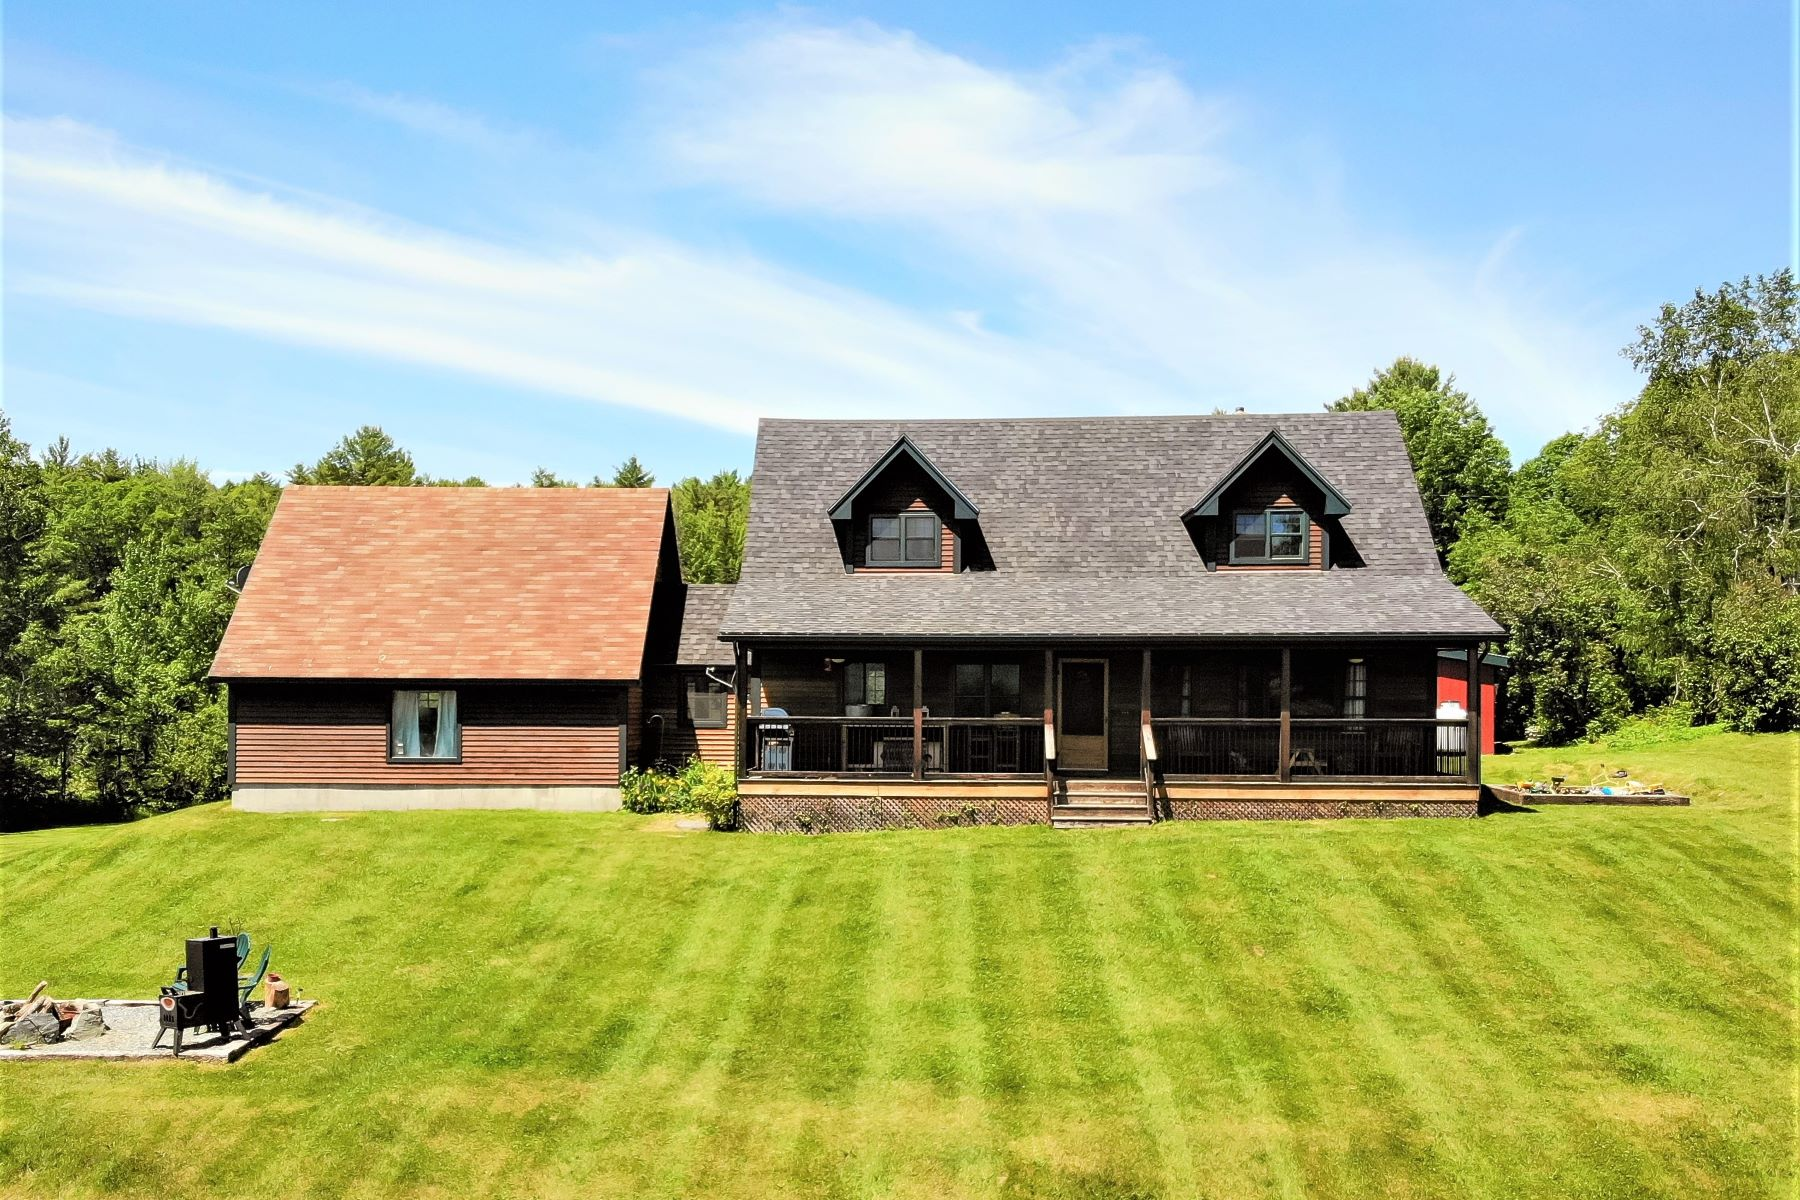 Single Family Homes for Sale at Three Bedroom Cape in Newbury on 34 Acres 740 Cole Rd Newbury, Vermont 05051 United States